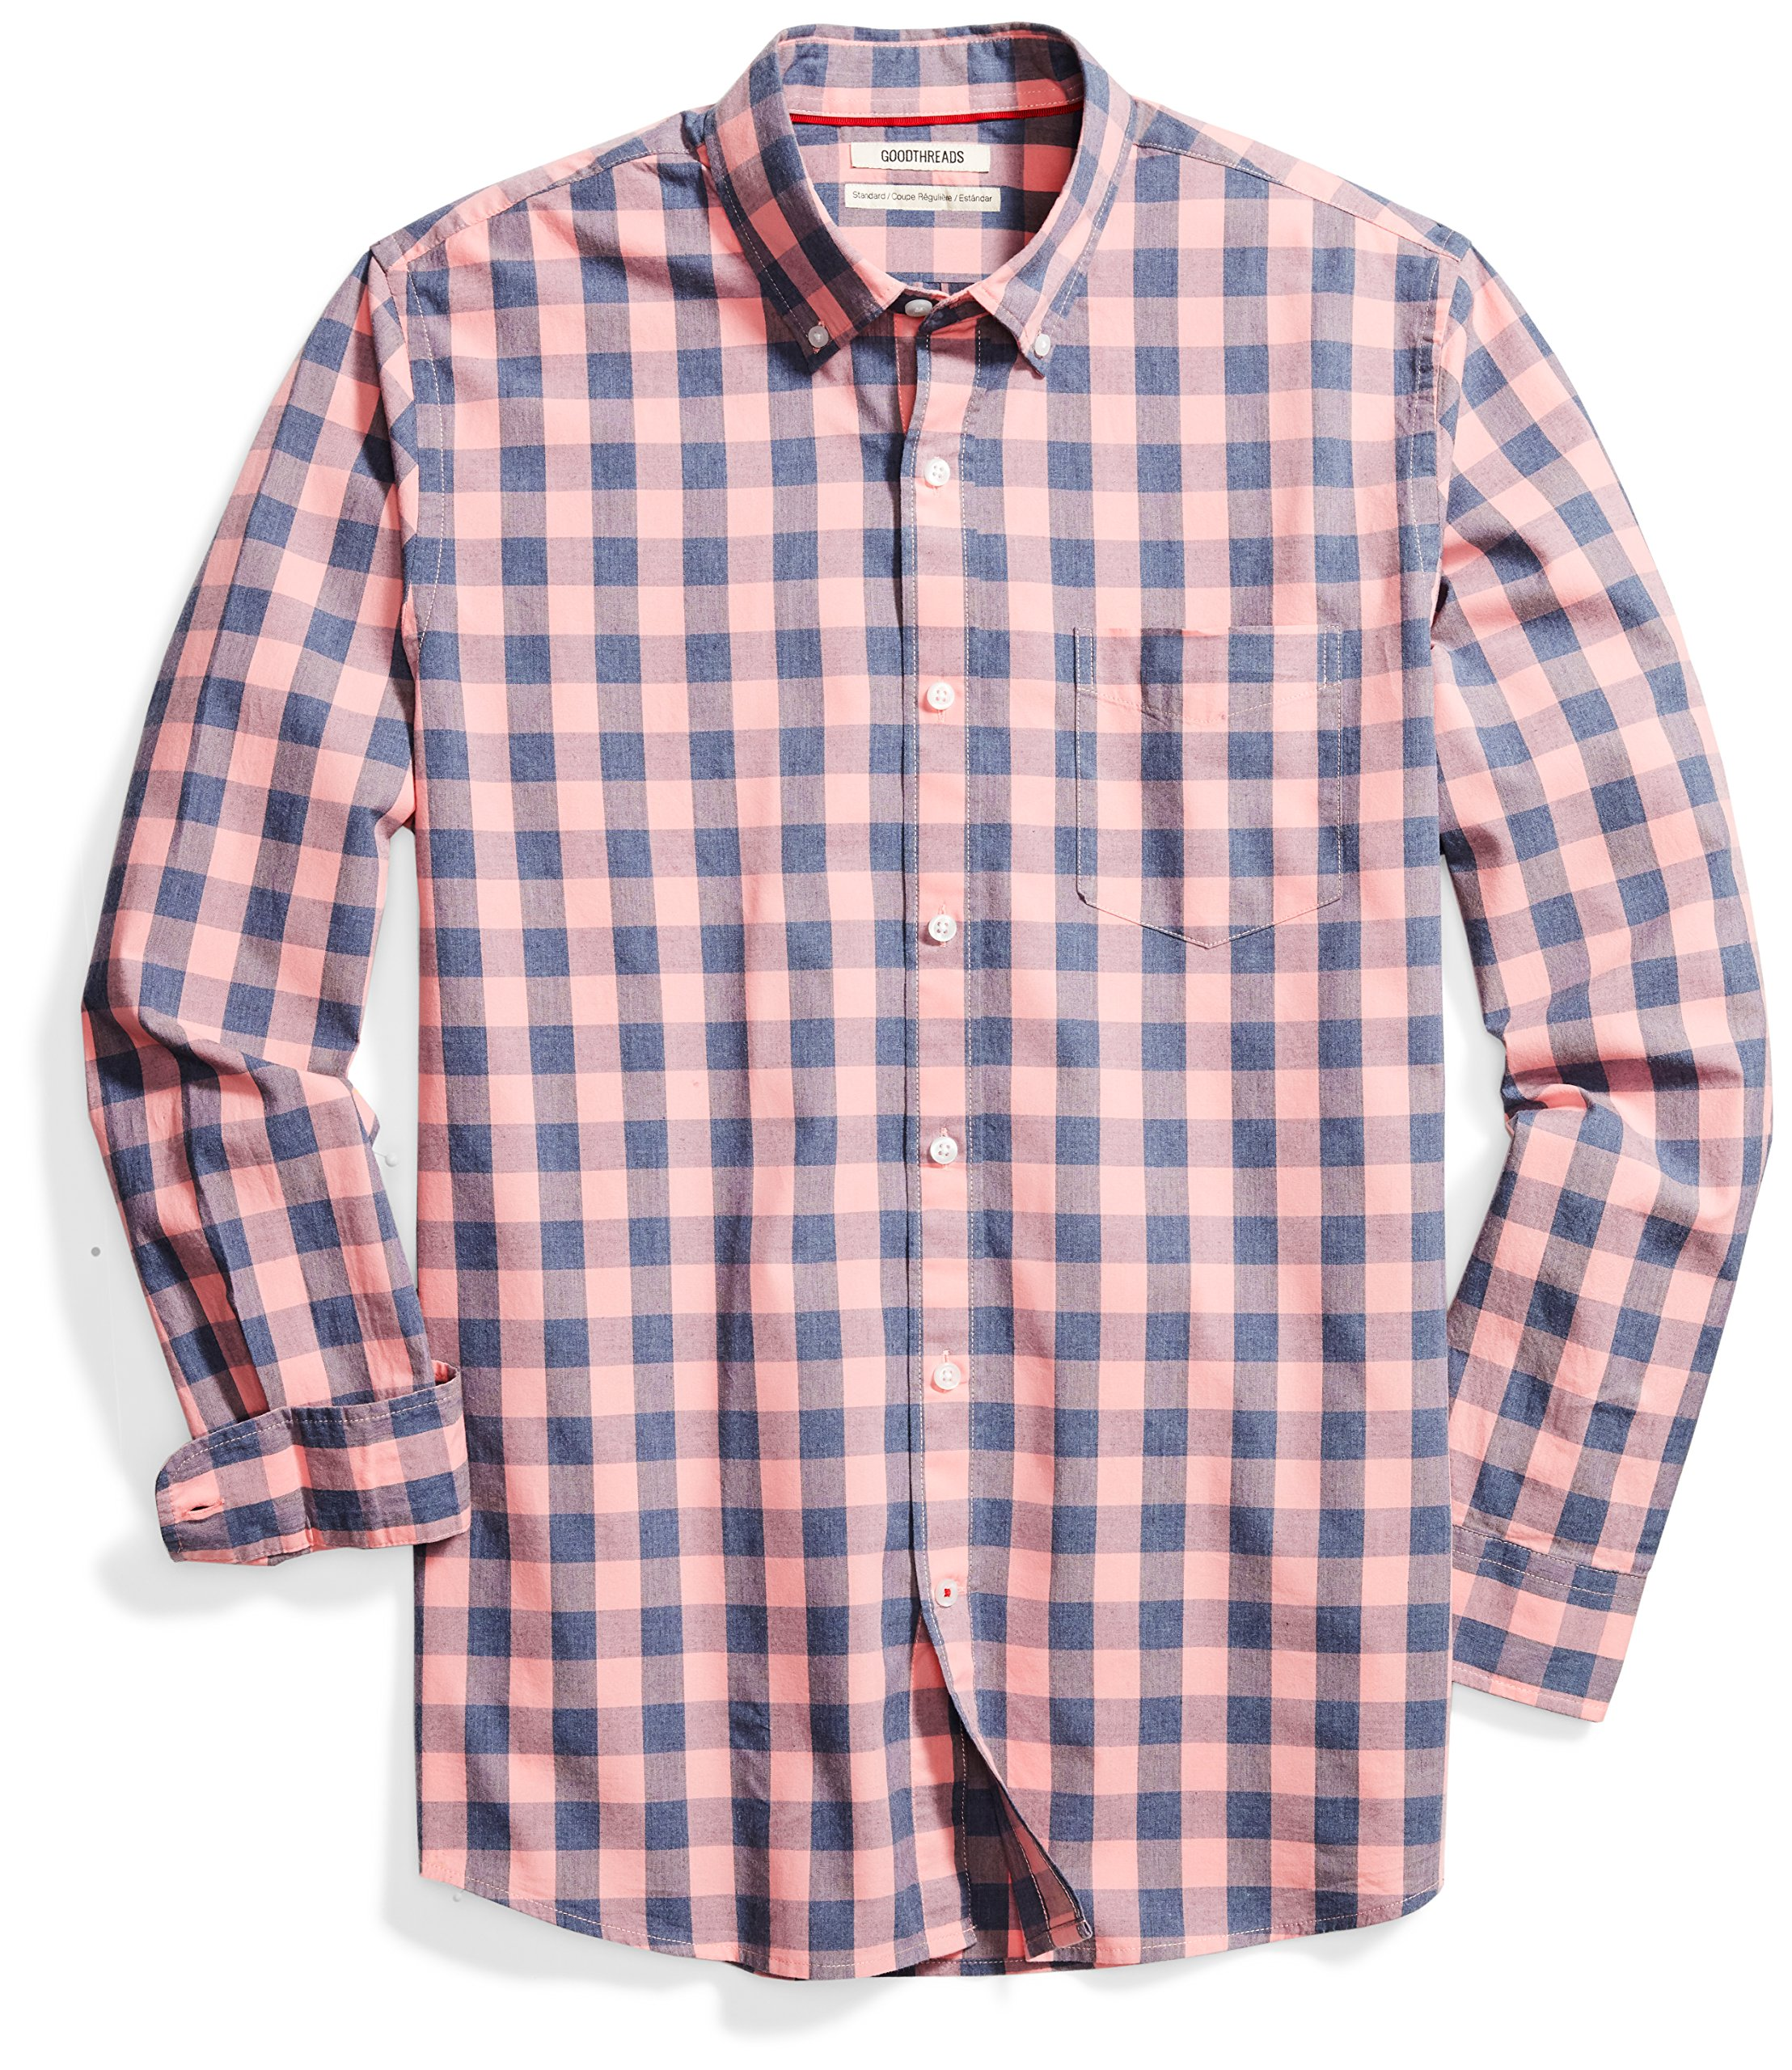 Goodthreads Men's Standard-Fit Long-Sleeve Heathered Scale Check Shirt, Pink/Blue, Large